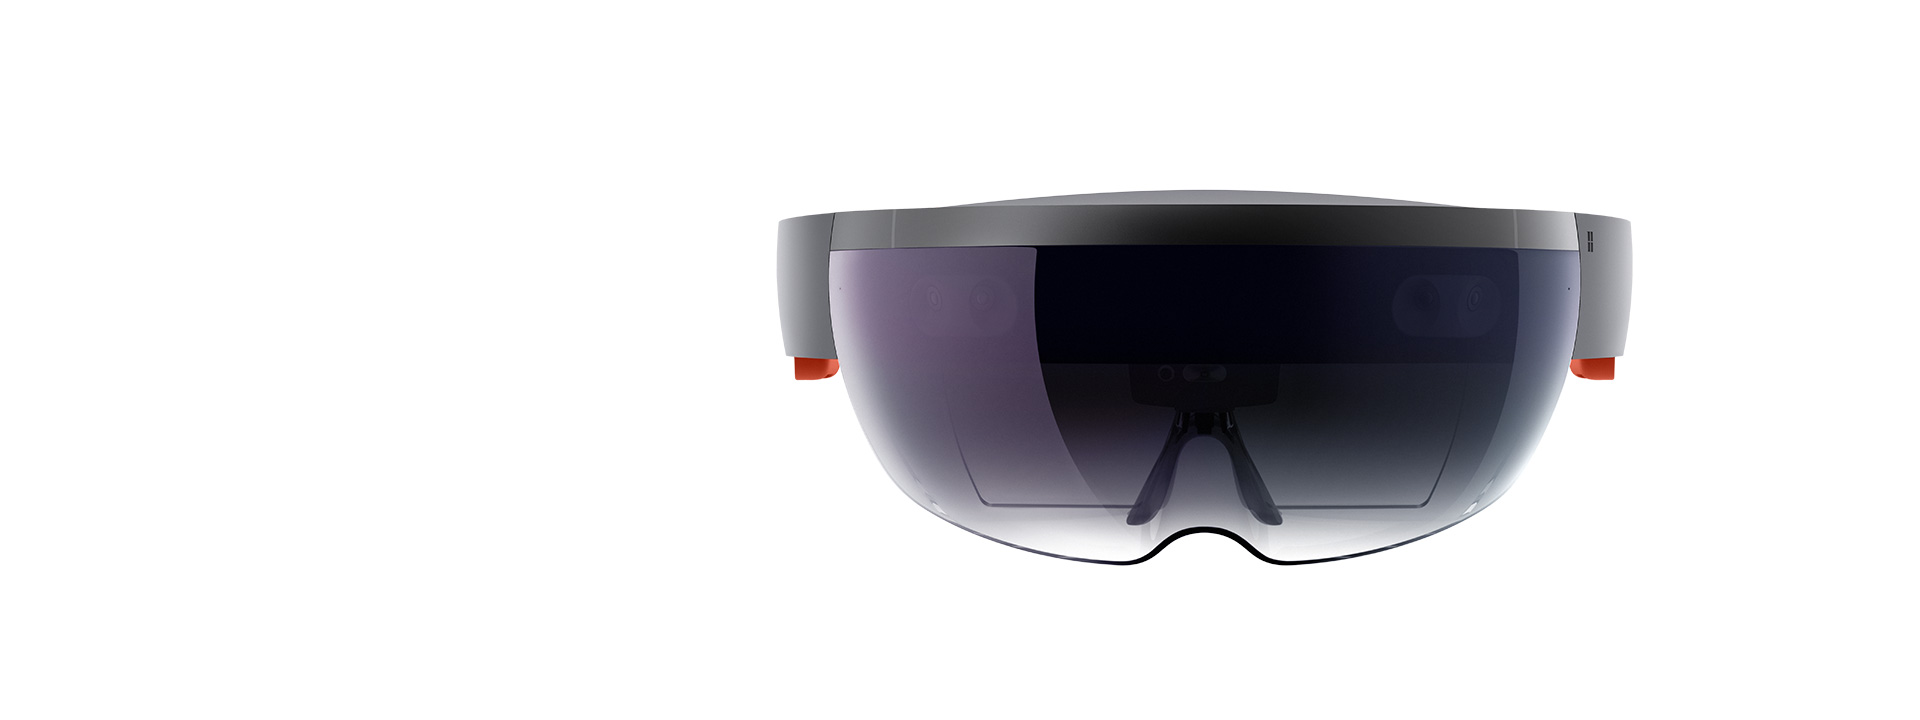 HoloLens as seen from the front